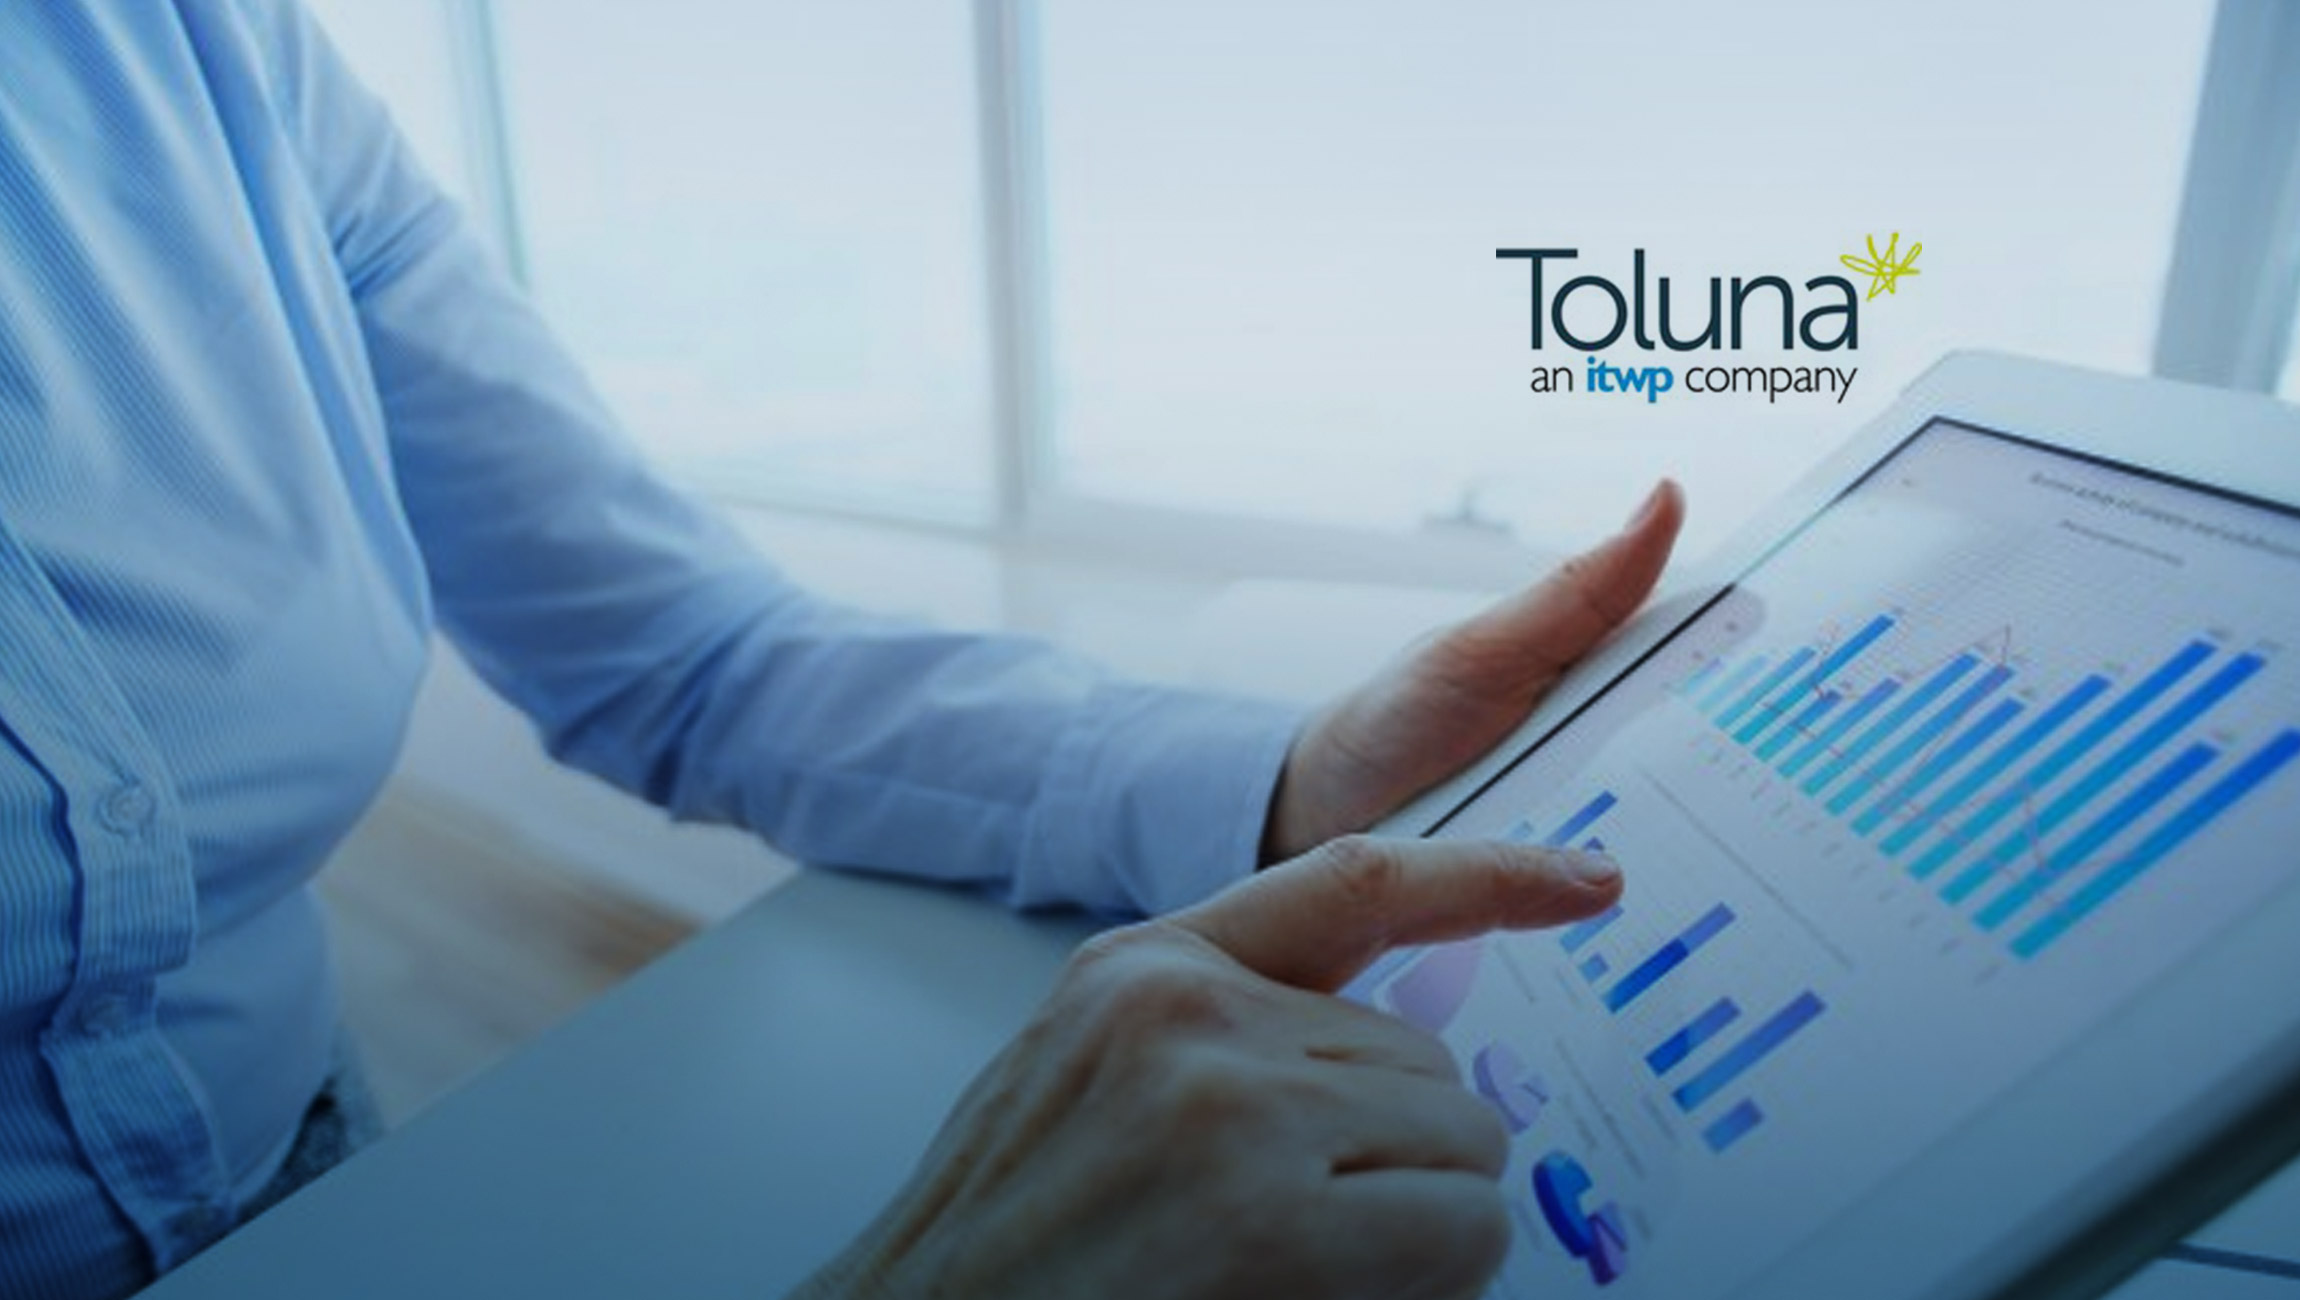 Toluna Announces Panel Community Growth to 30 Million Members Worldwide